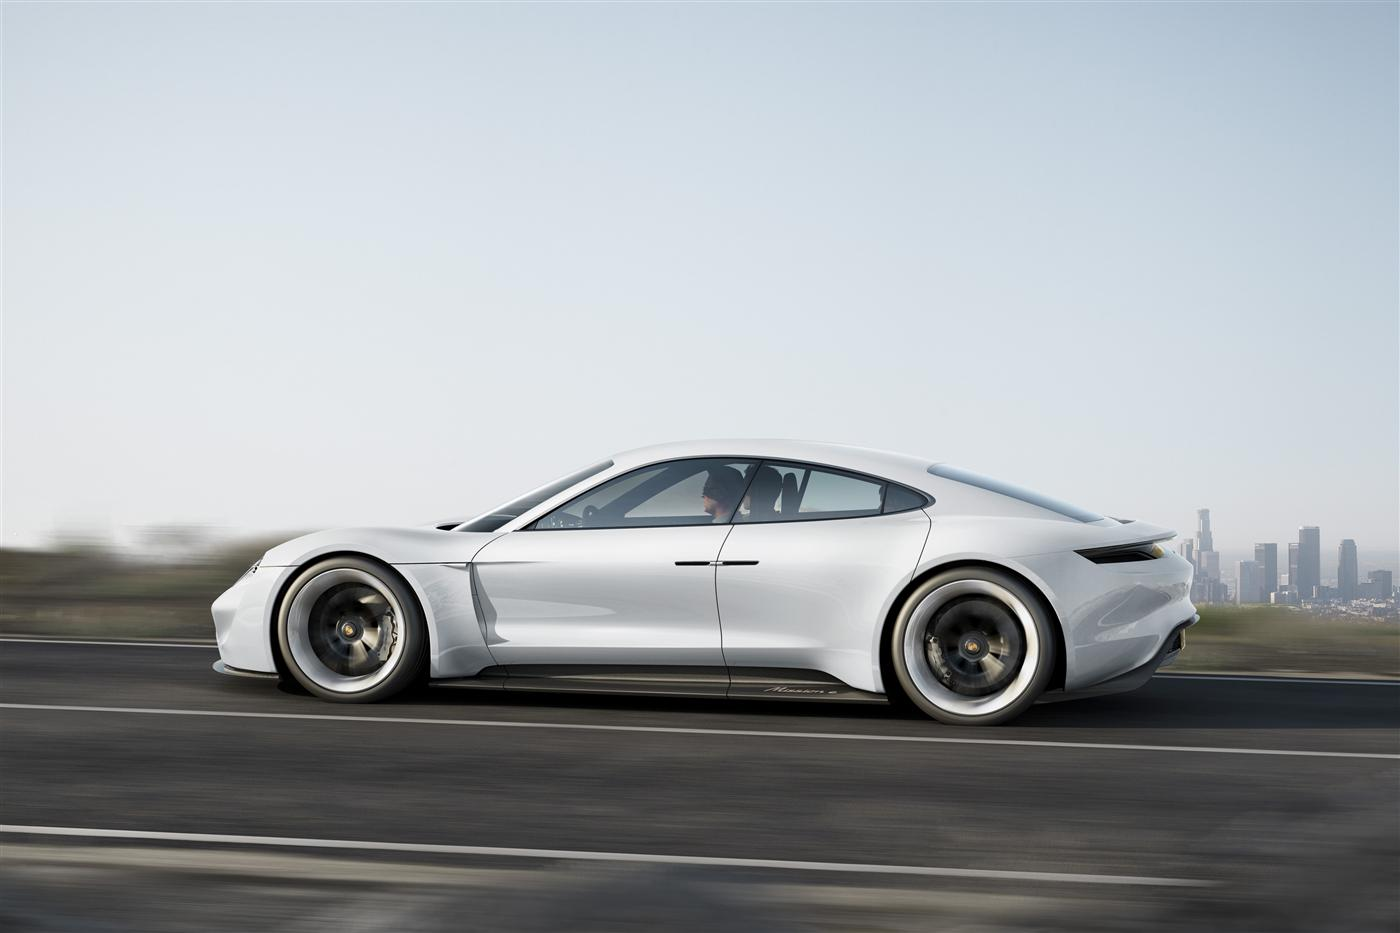 The Mission E: Porsche takes on Tesla 3